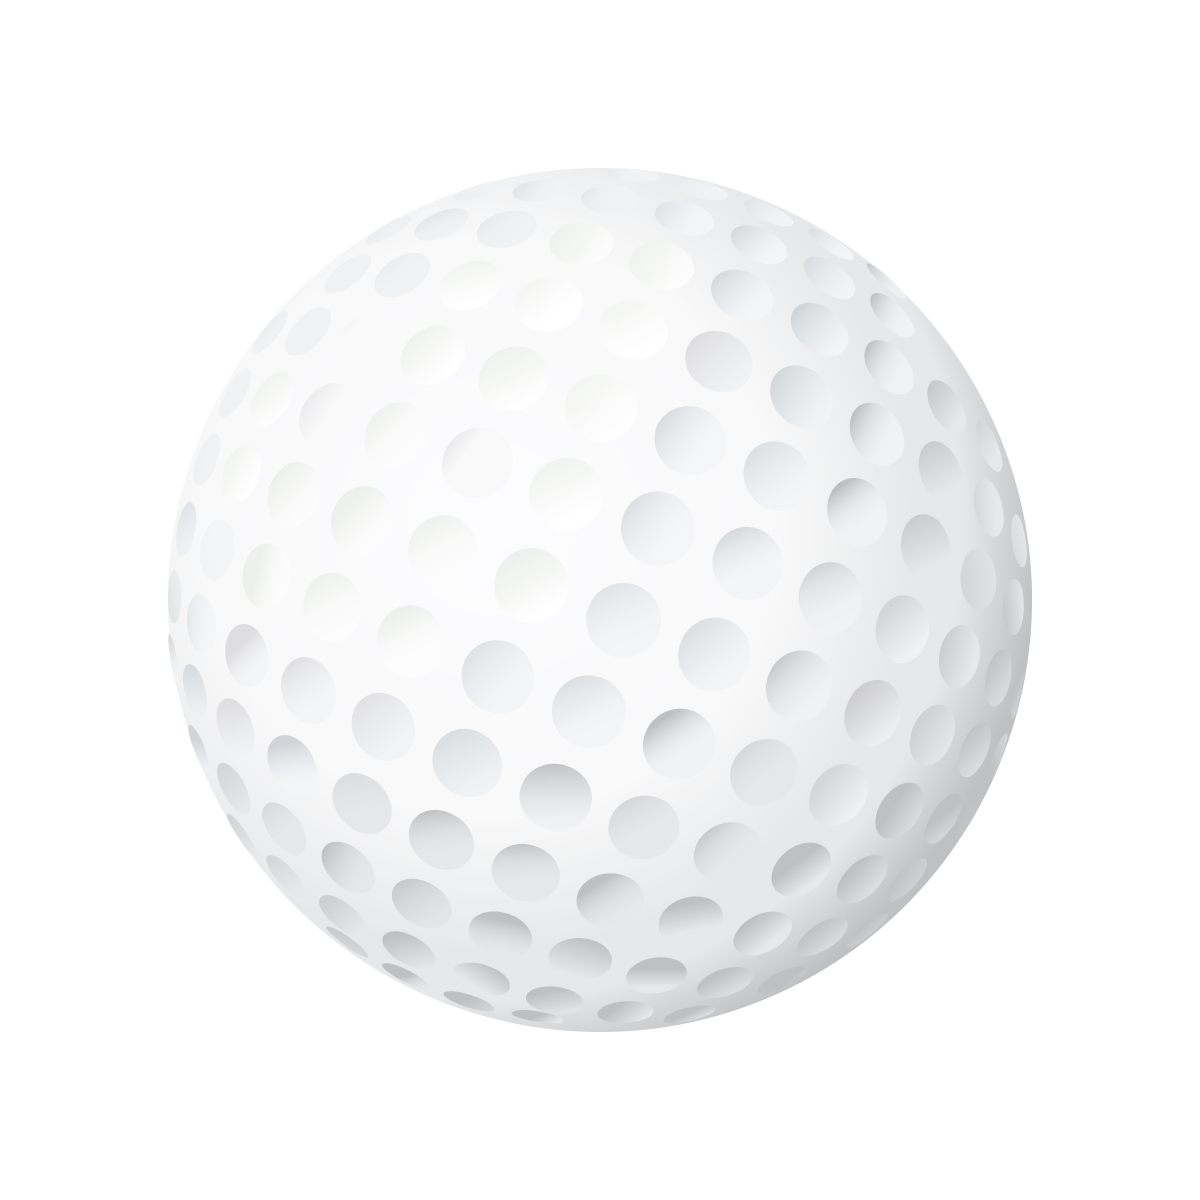 —Pngtree—the isolated golf ball flat_4844551